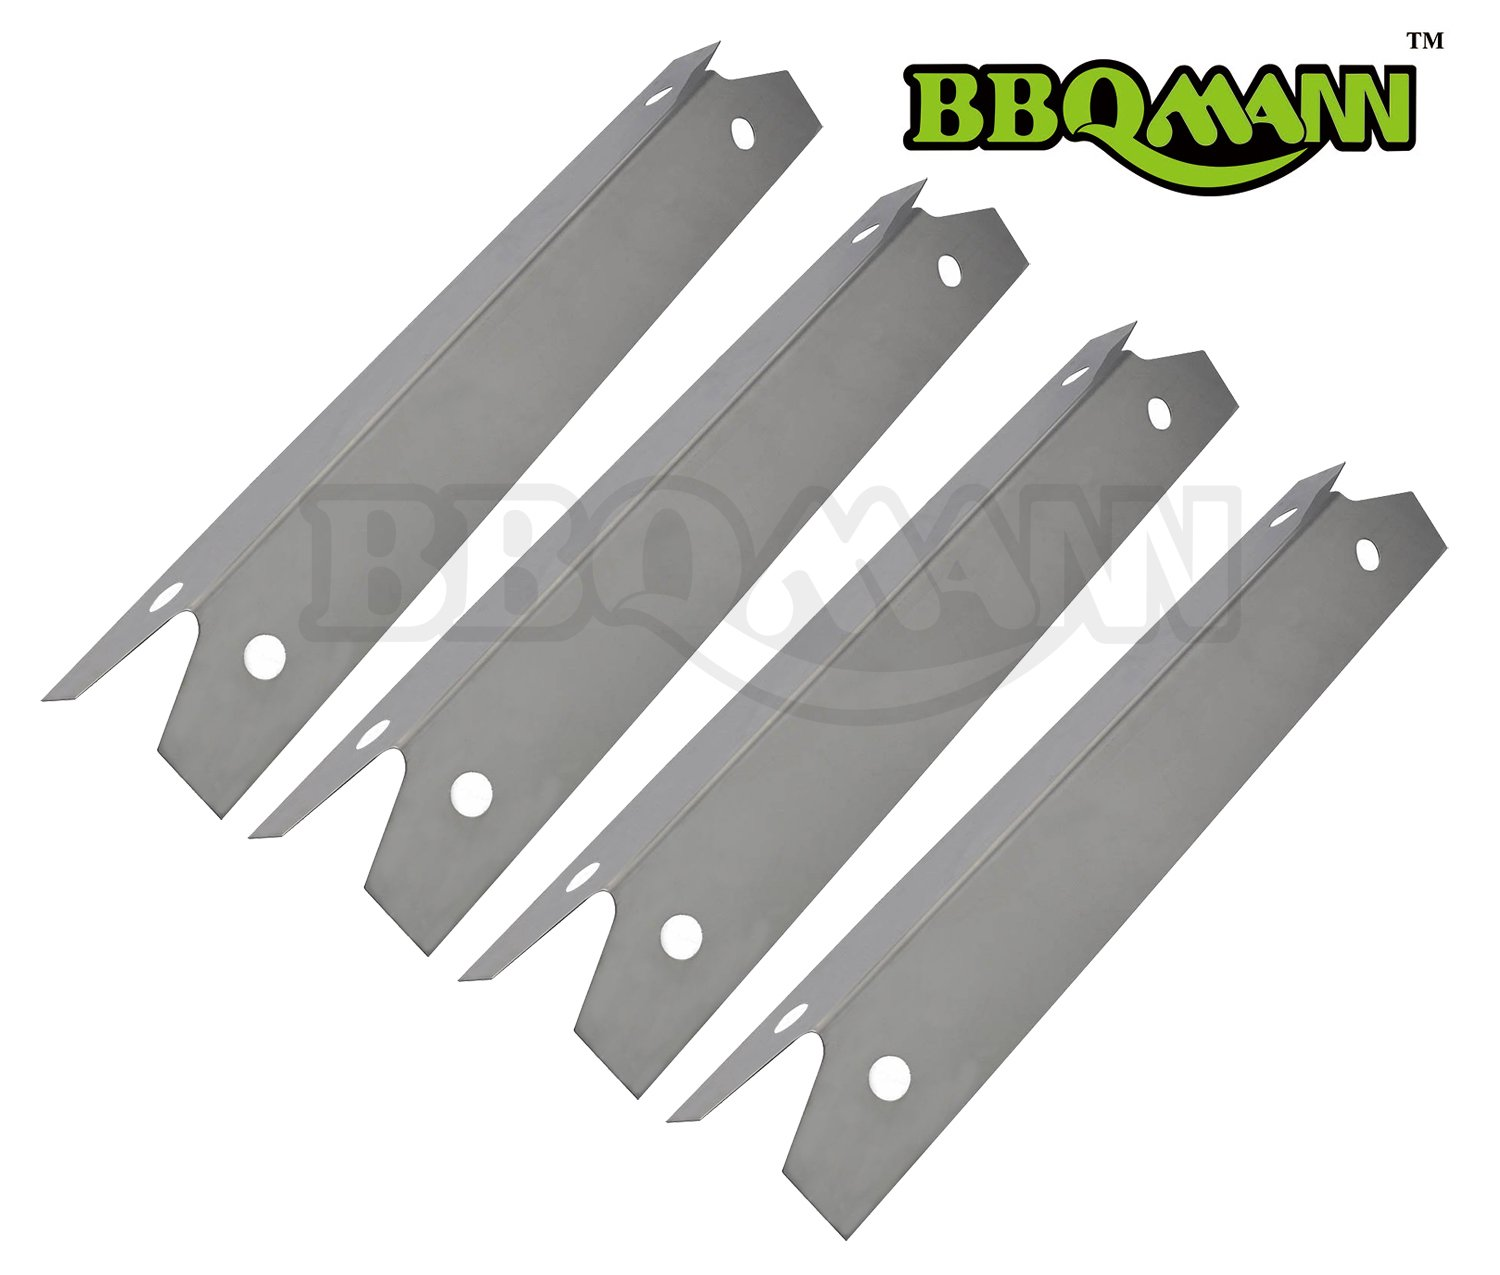 "BBQMANN JH311 (4-pack) BBQ Gas Grill Stainless Steel Heat Plate/shield for Brinkmann, Charmglow Models Grills (16 3/4"" X 3 7/8"")"